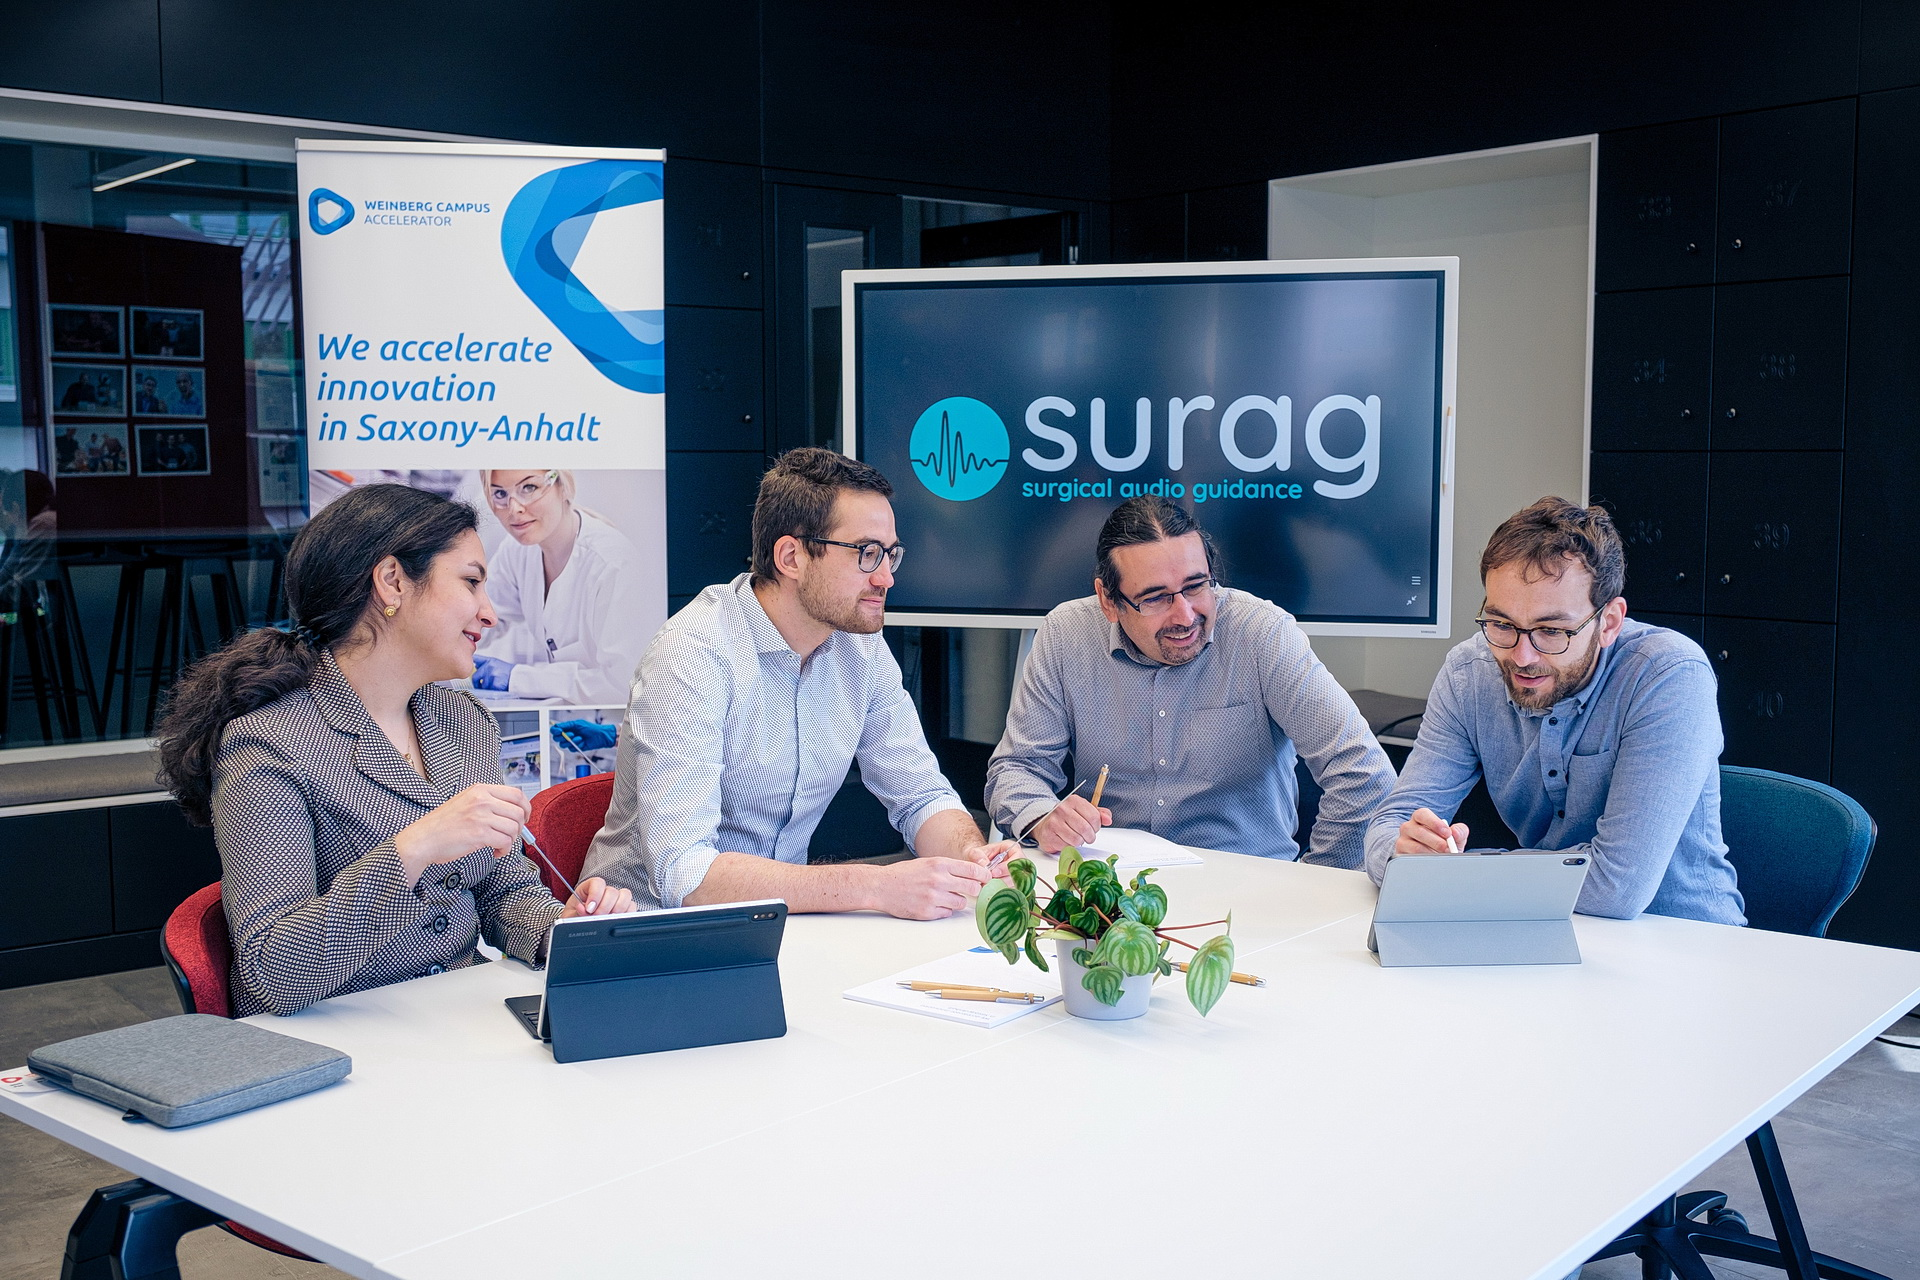 Four people sitting together on a table discussing a topic.